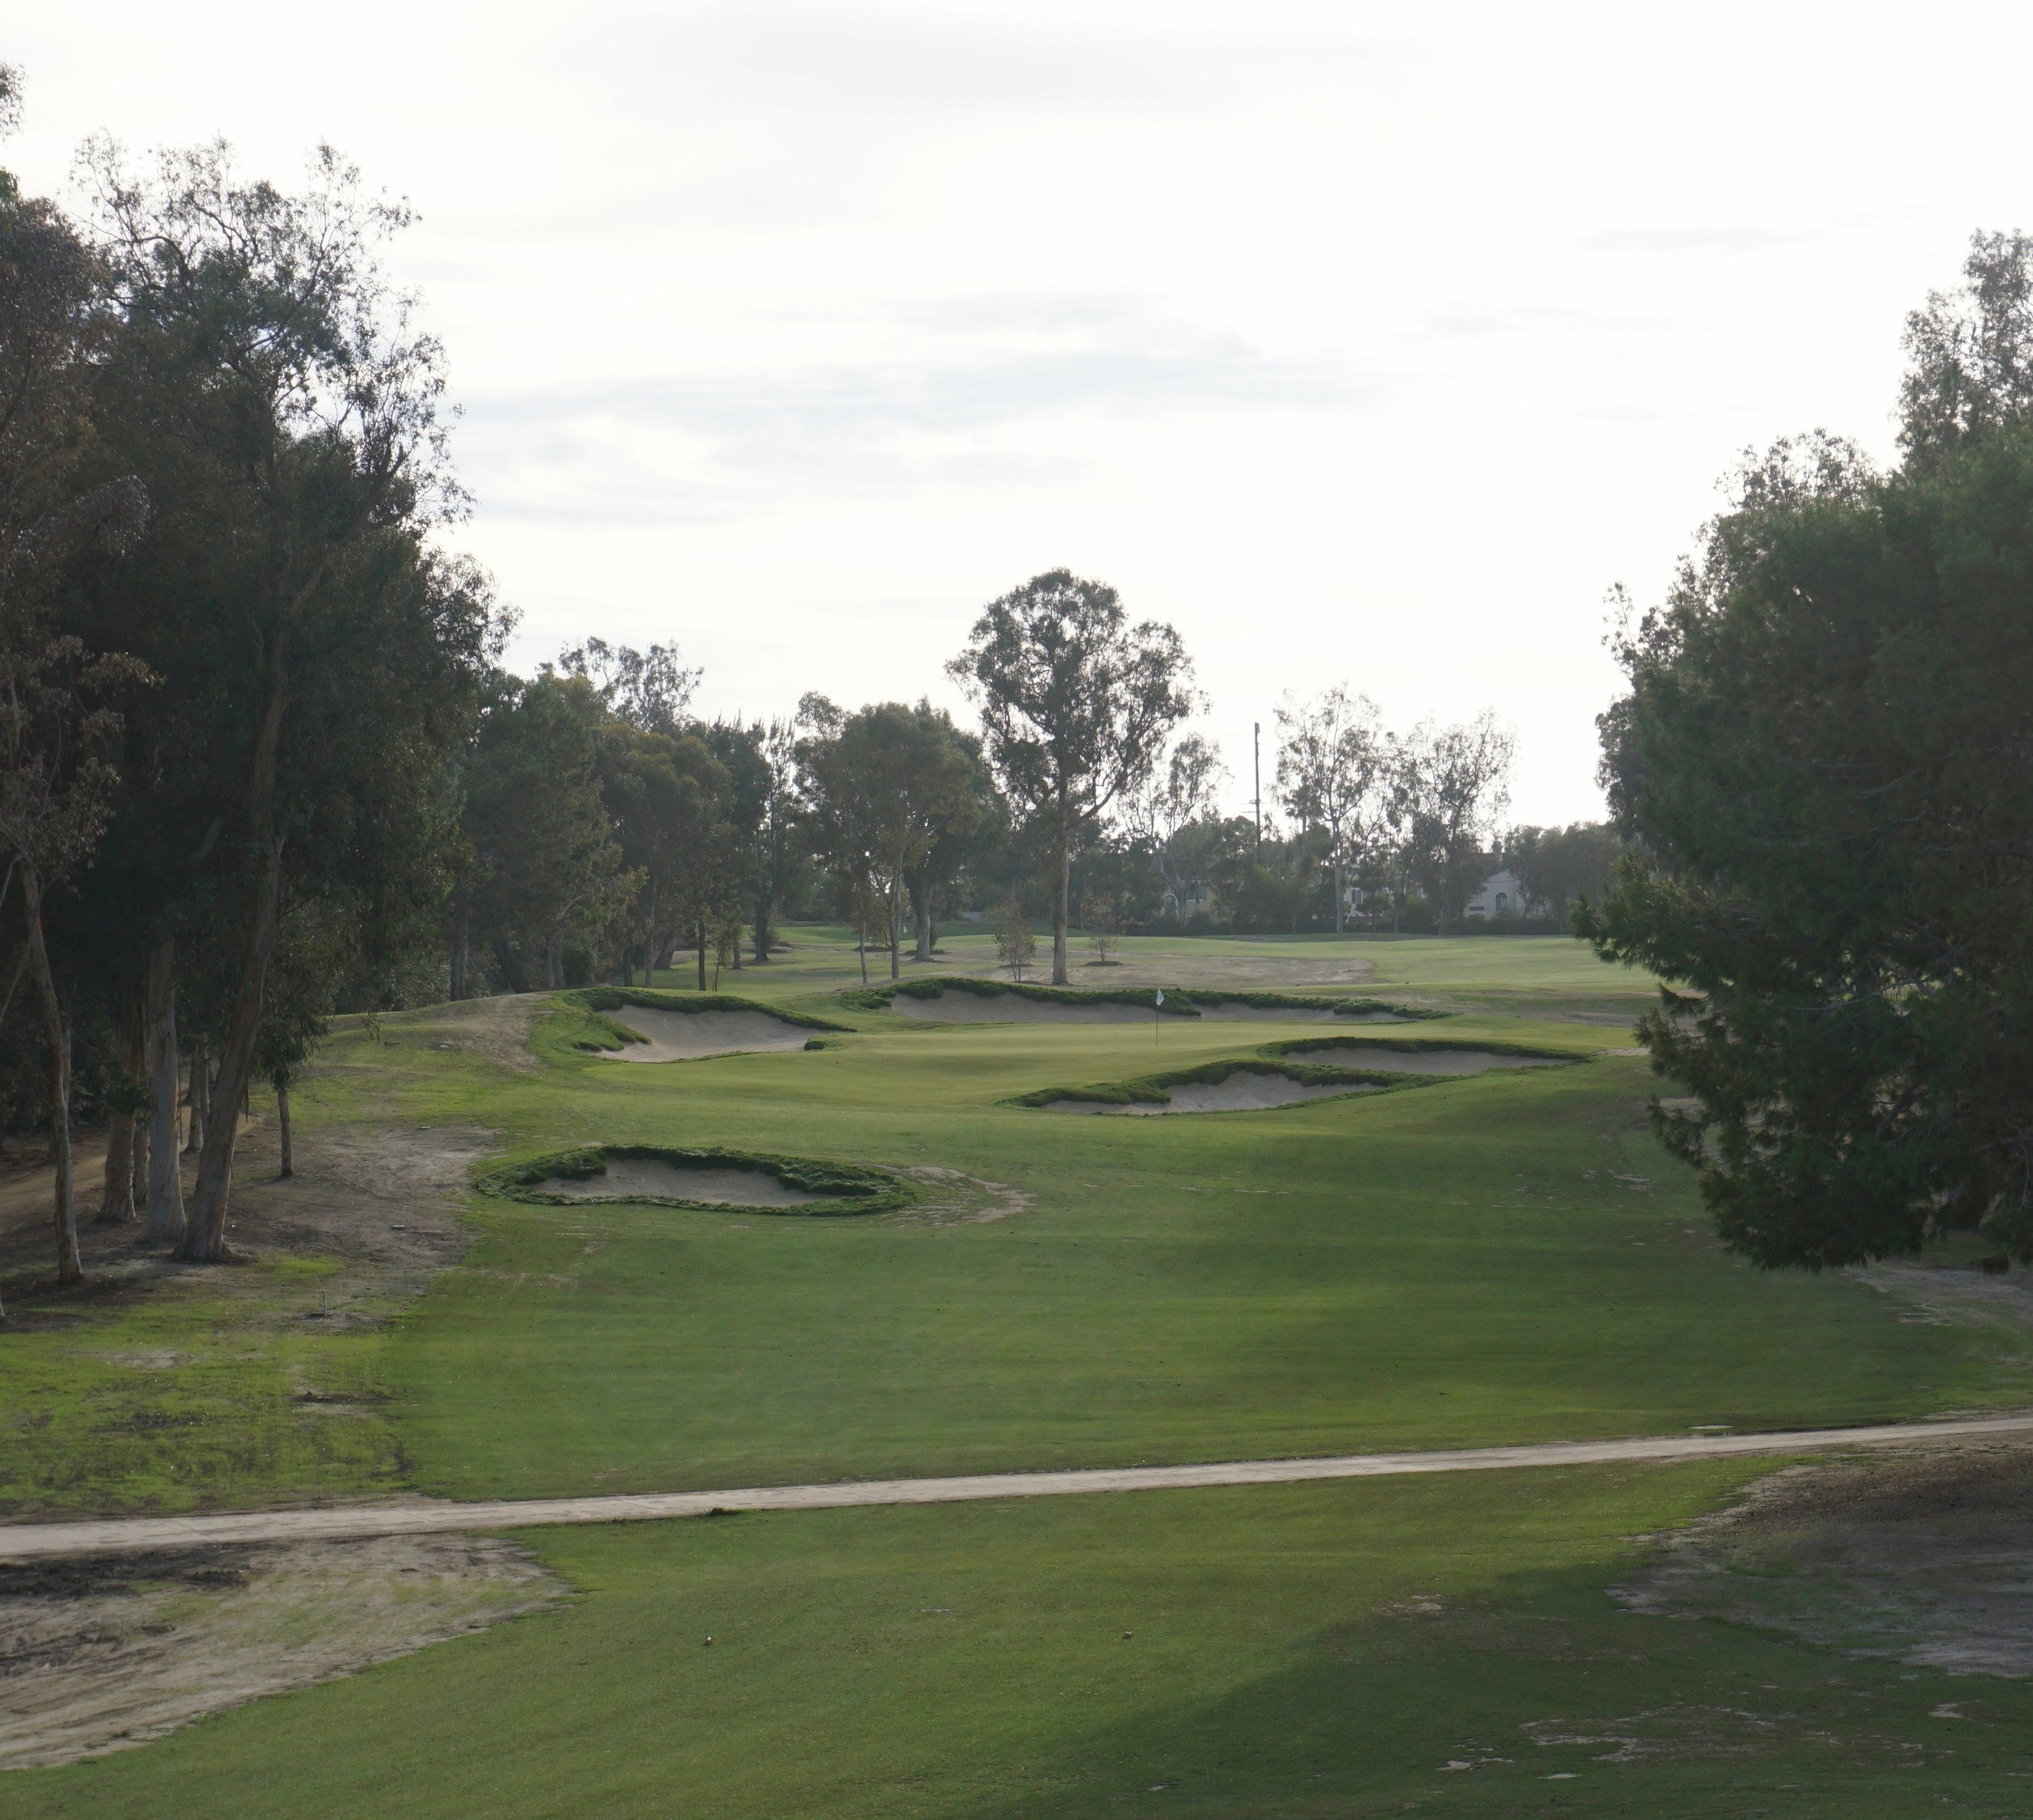 Bunkering on the short 6th hole at Santa Ana